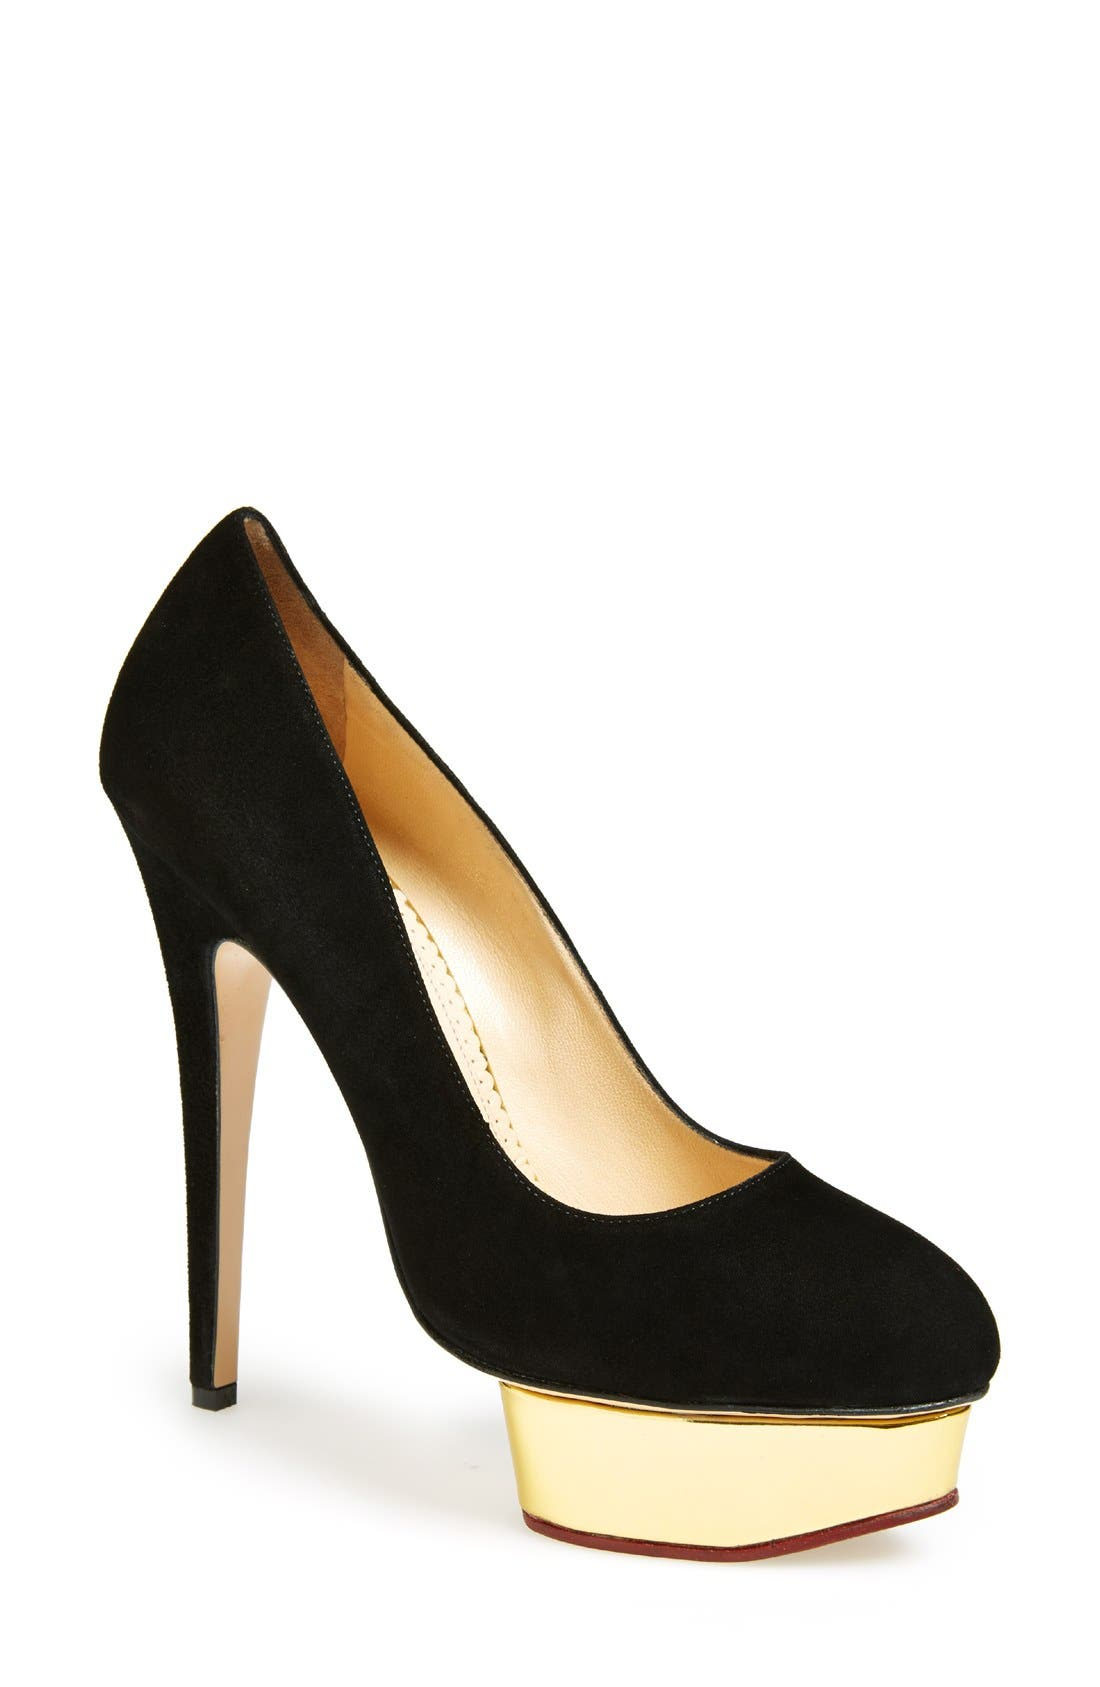 Alternate Image 1 Selected - Charlotte Olympia 'Dolly' Pump (Women)